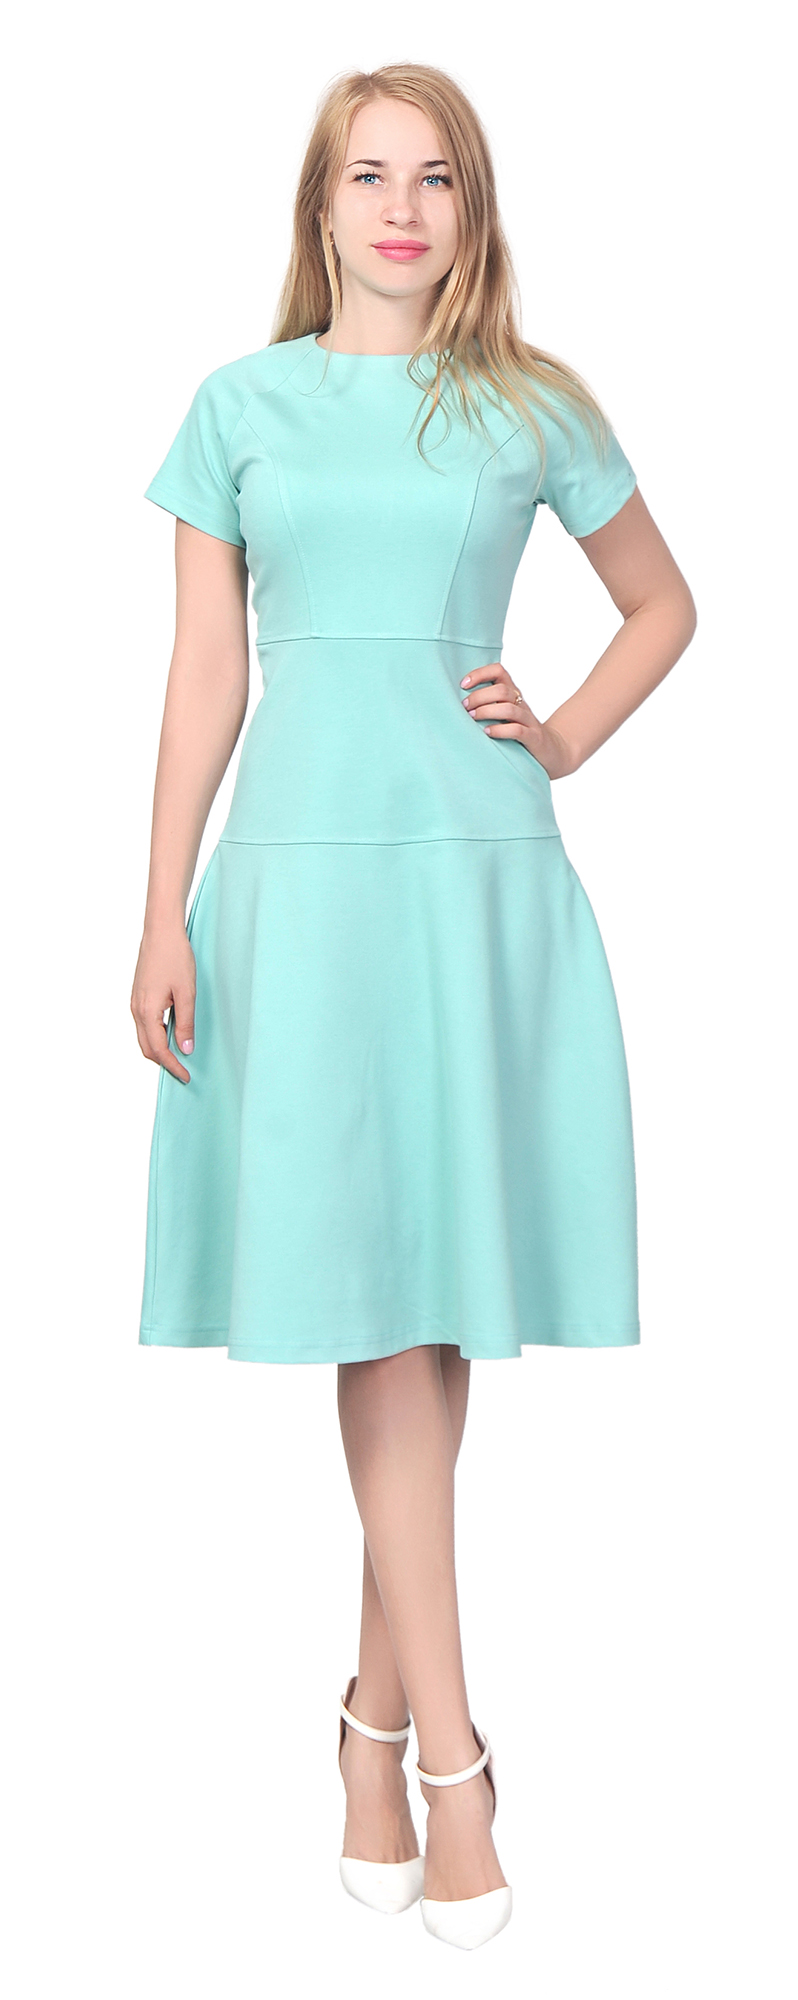 WOMENS ELEGANT CASUAL WORK OFFICE KNEE LENGTH DRESS SHORT SLEEVE ...